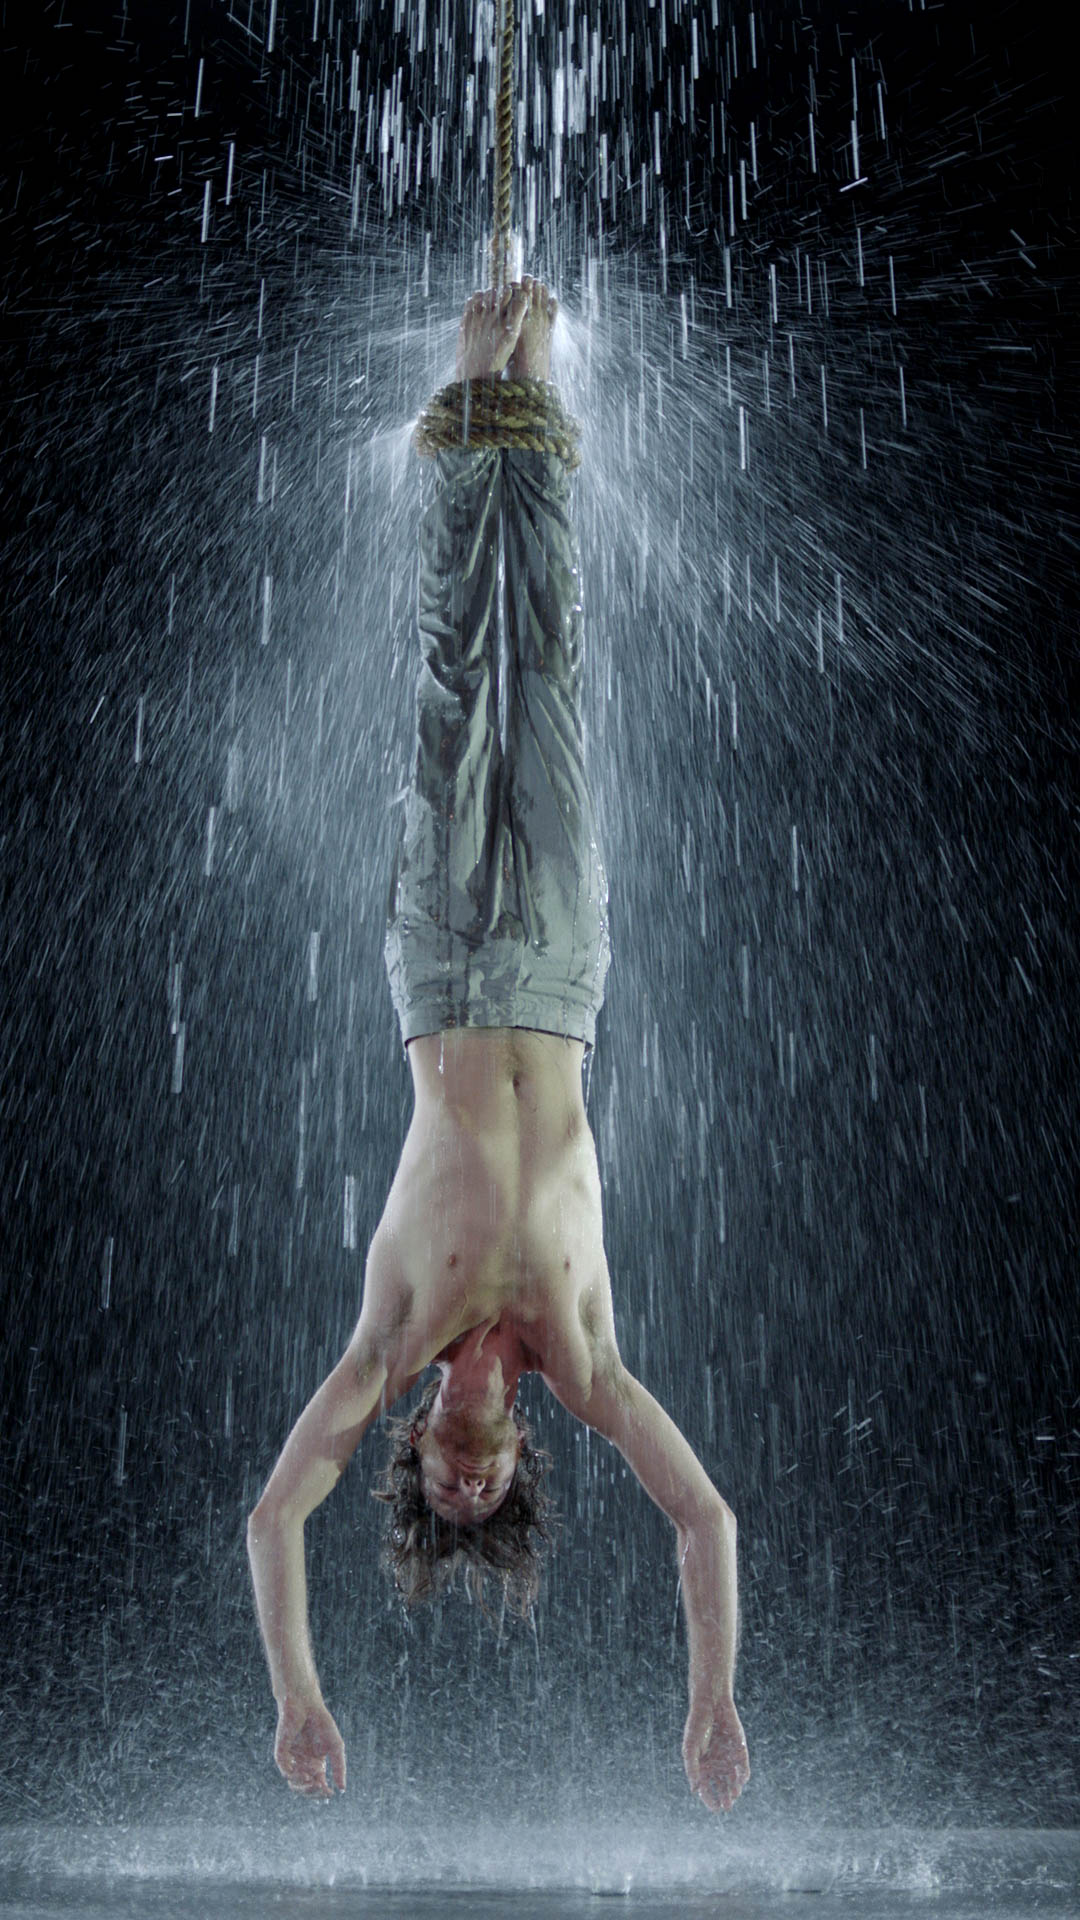 Bill Viola, Water Martyr , 2014, Color High-Definition video on flat panel display, 42 3/8 x 24 1/2 x 2 5/8 in. (107.6 x 62.1 x 6.8 cm), 7:10 minutes, Executive producer: Kira Perov, Performer: John Hay